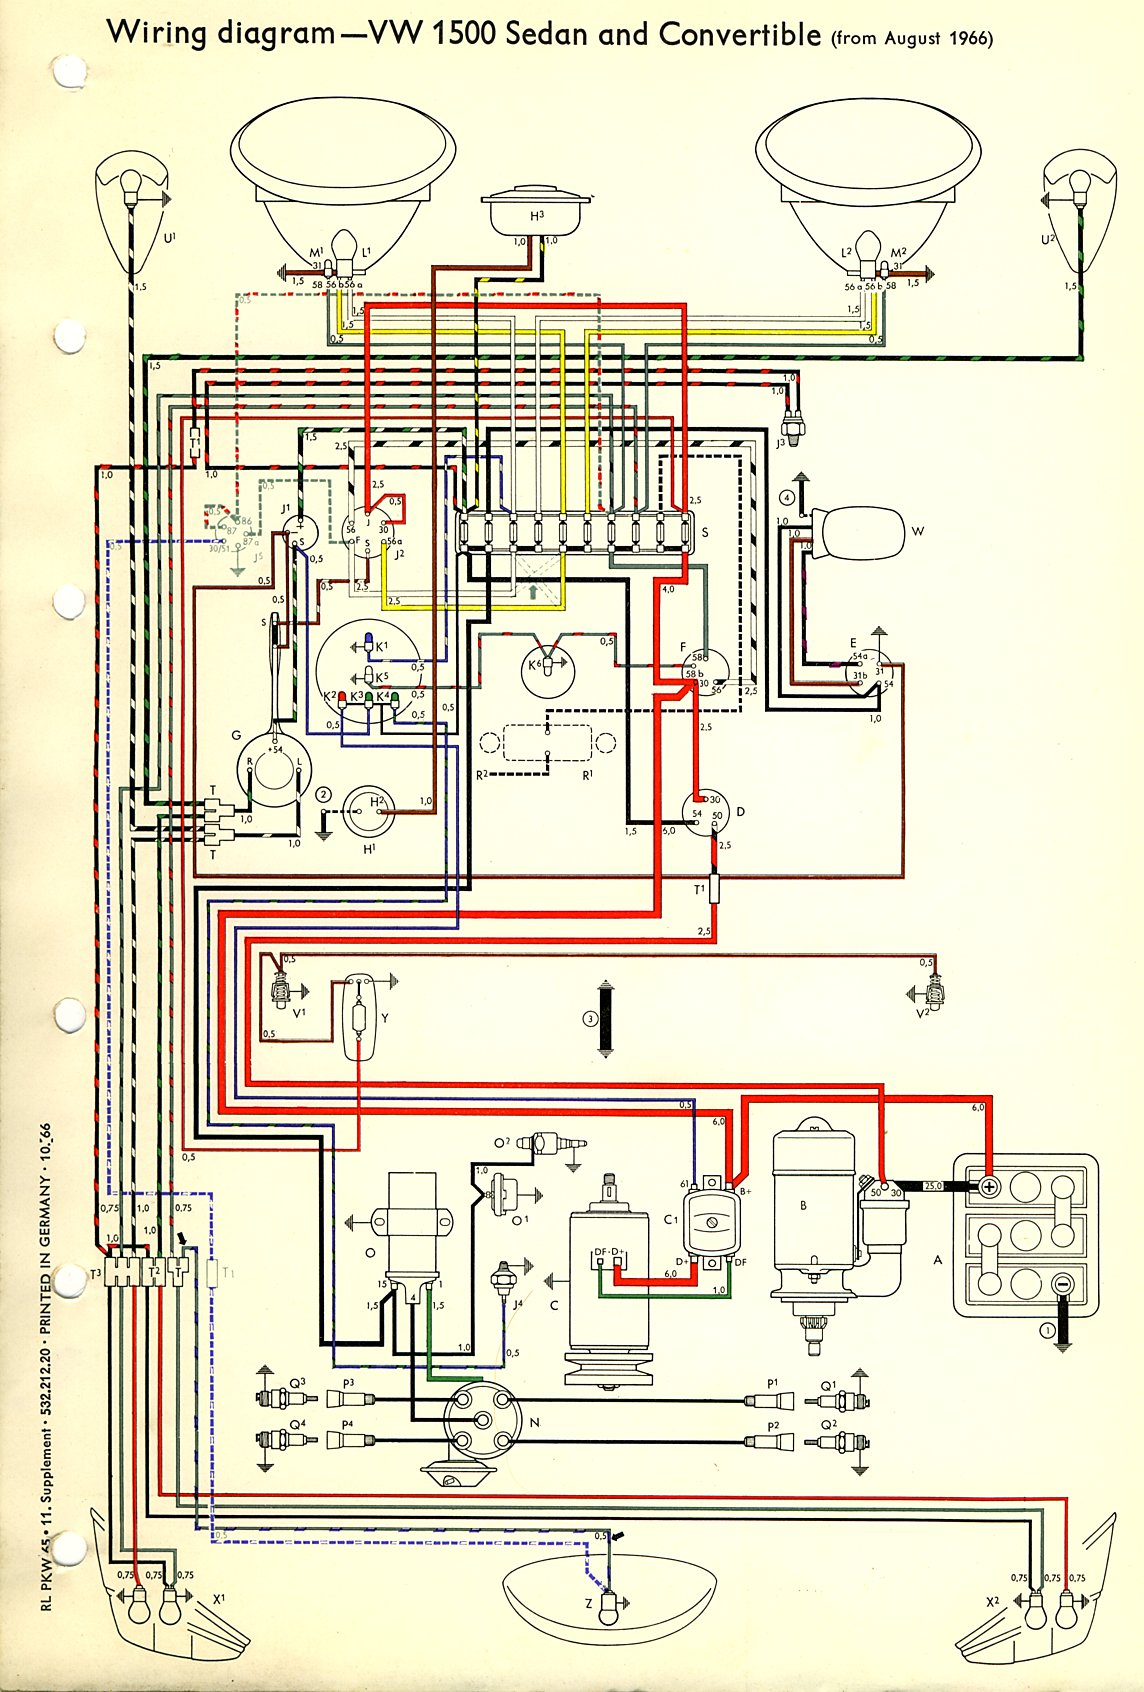 bug_67 67 vw bus wiring harness 71 vw wiring harness \u2022 wiring diagrams Wiring Harness Diagram at crackthecode.co